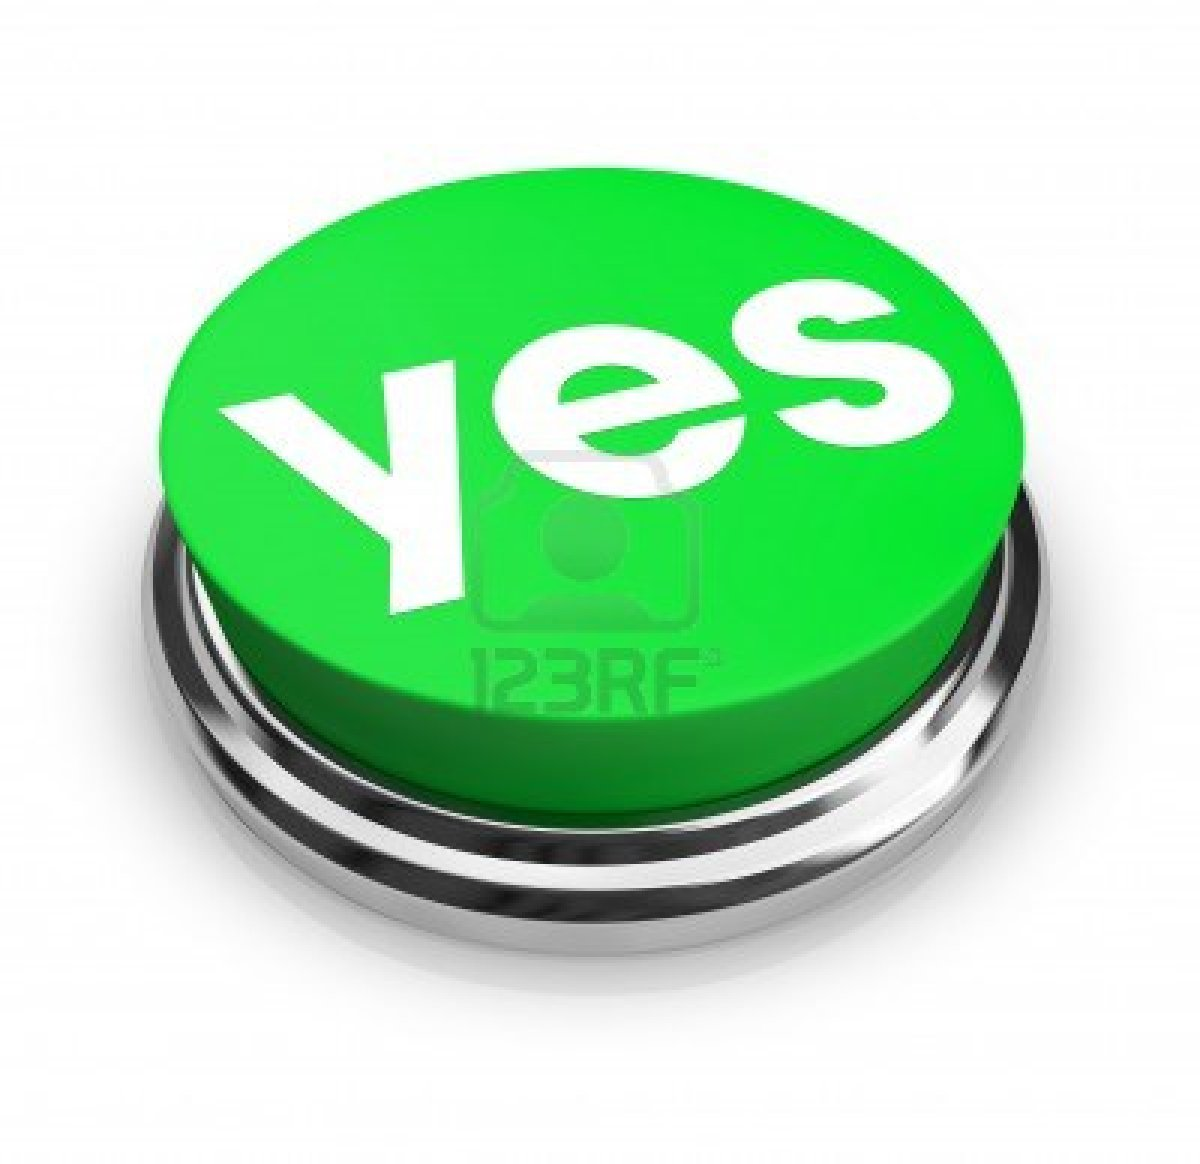 Clipart of the yes button free image.